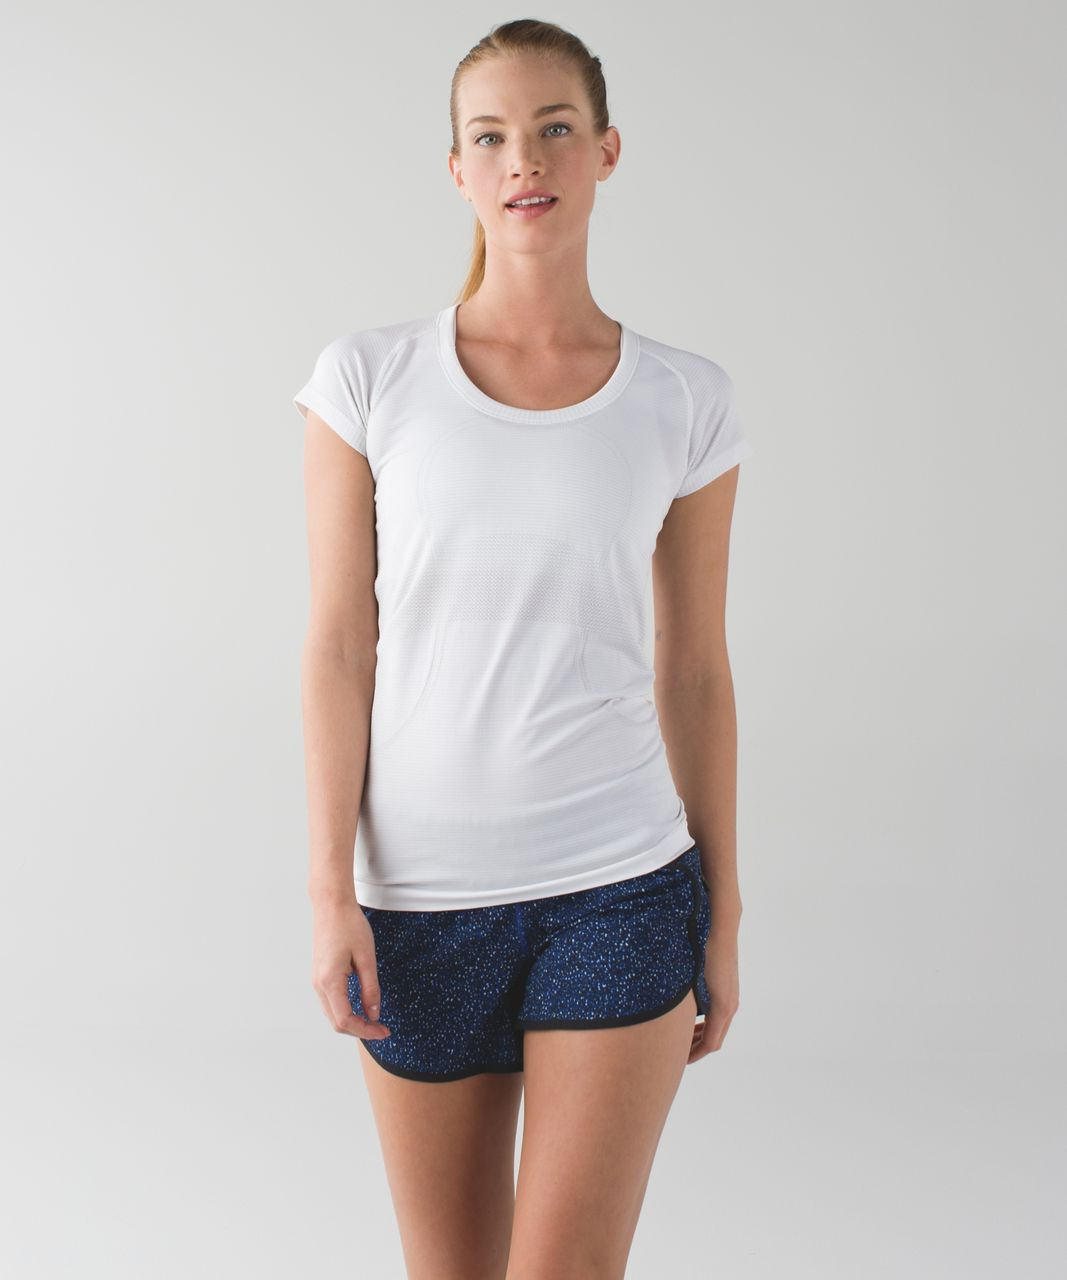 Lululemon Tracker Short III *4-way Stretch - Flashback Static Caspian Blue Sapphire Blue / Black